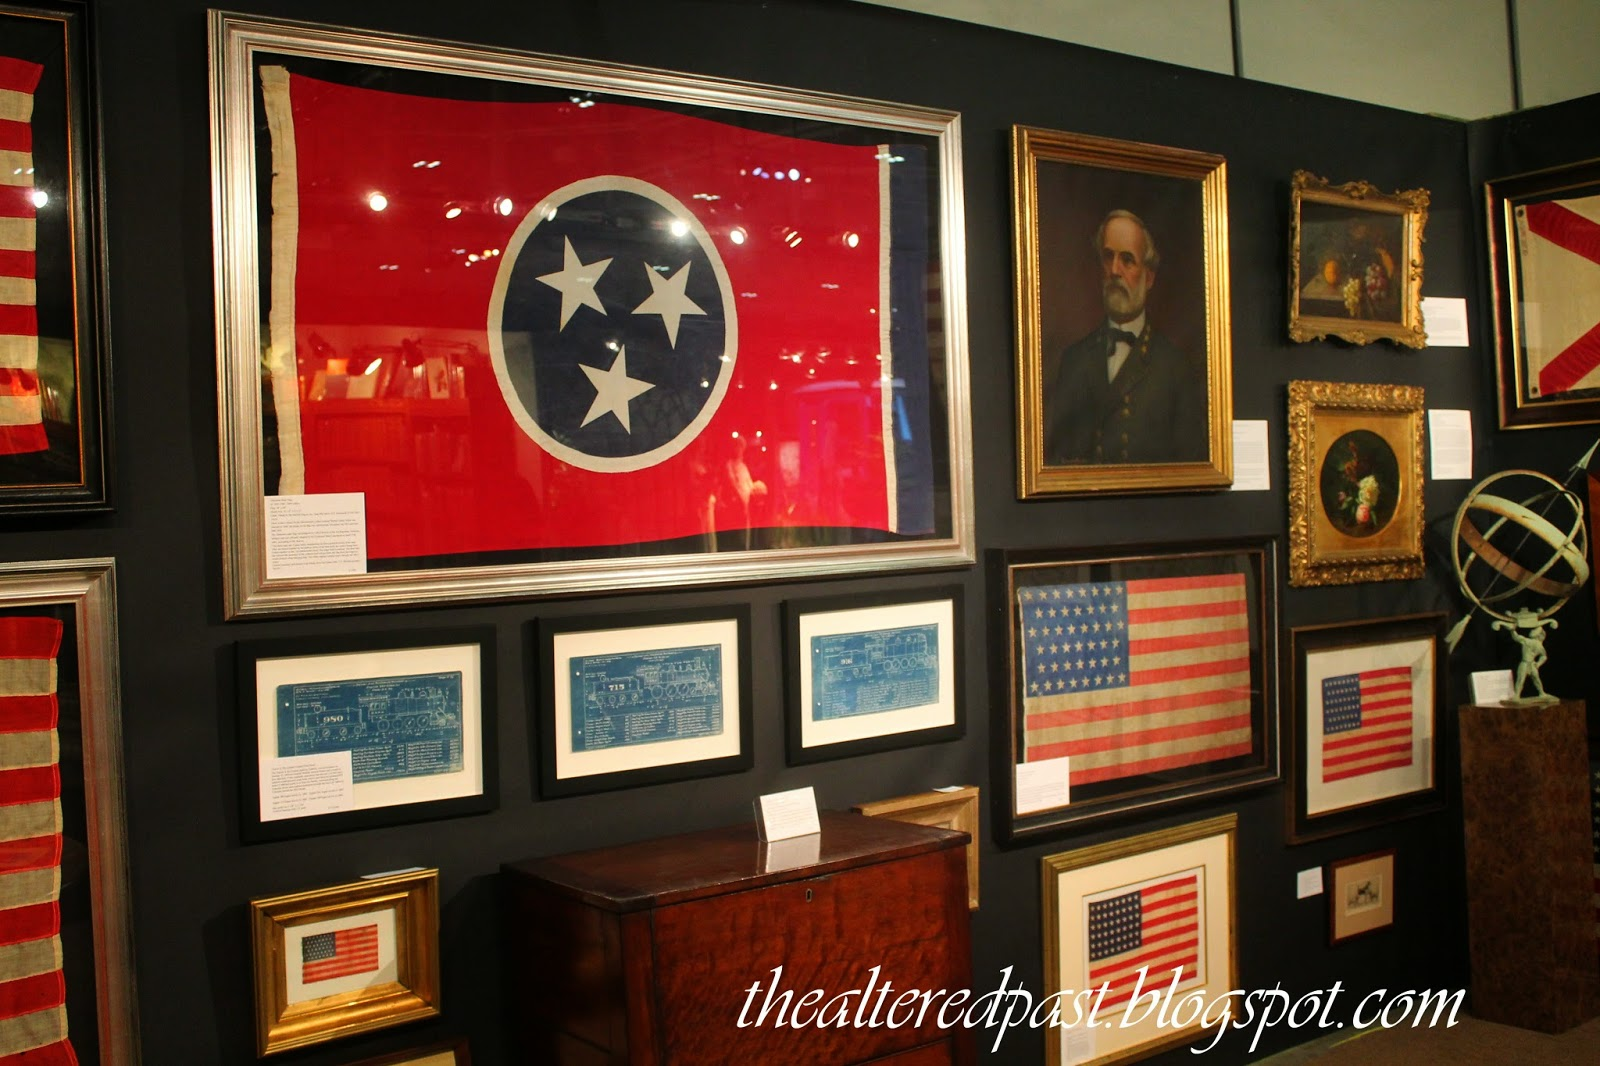 nashville antiques and garden show, the altered past blog